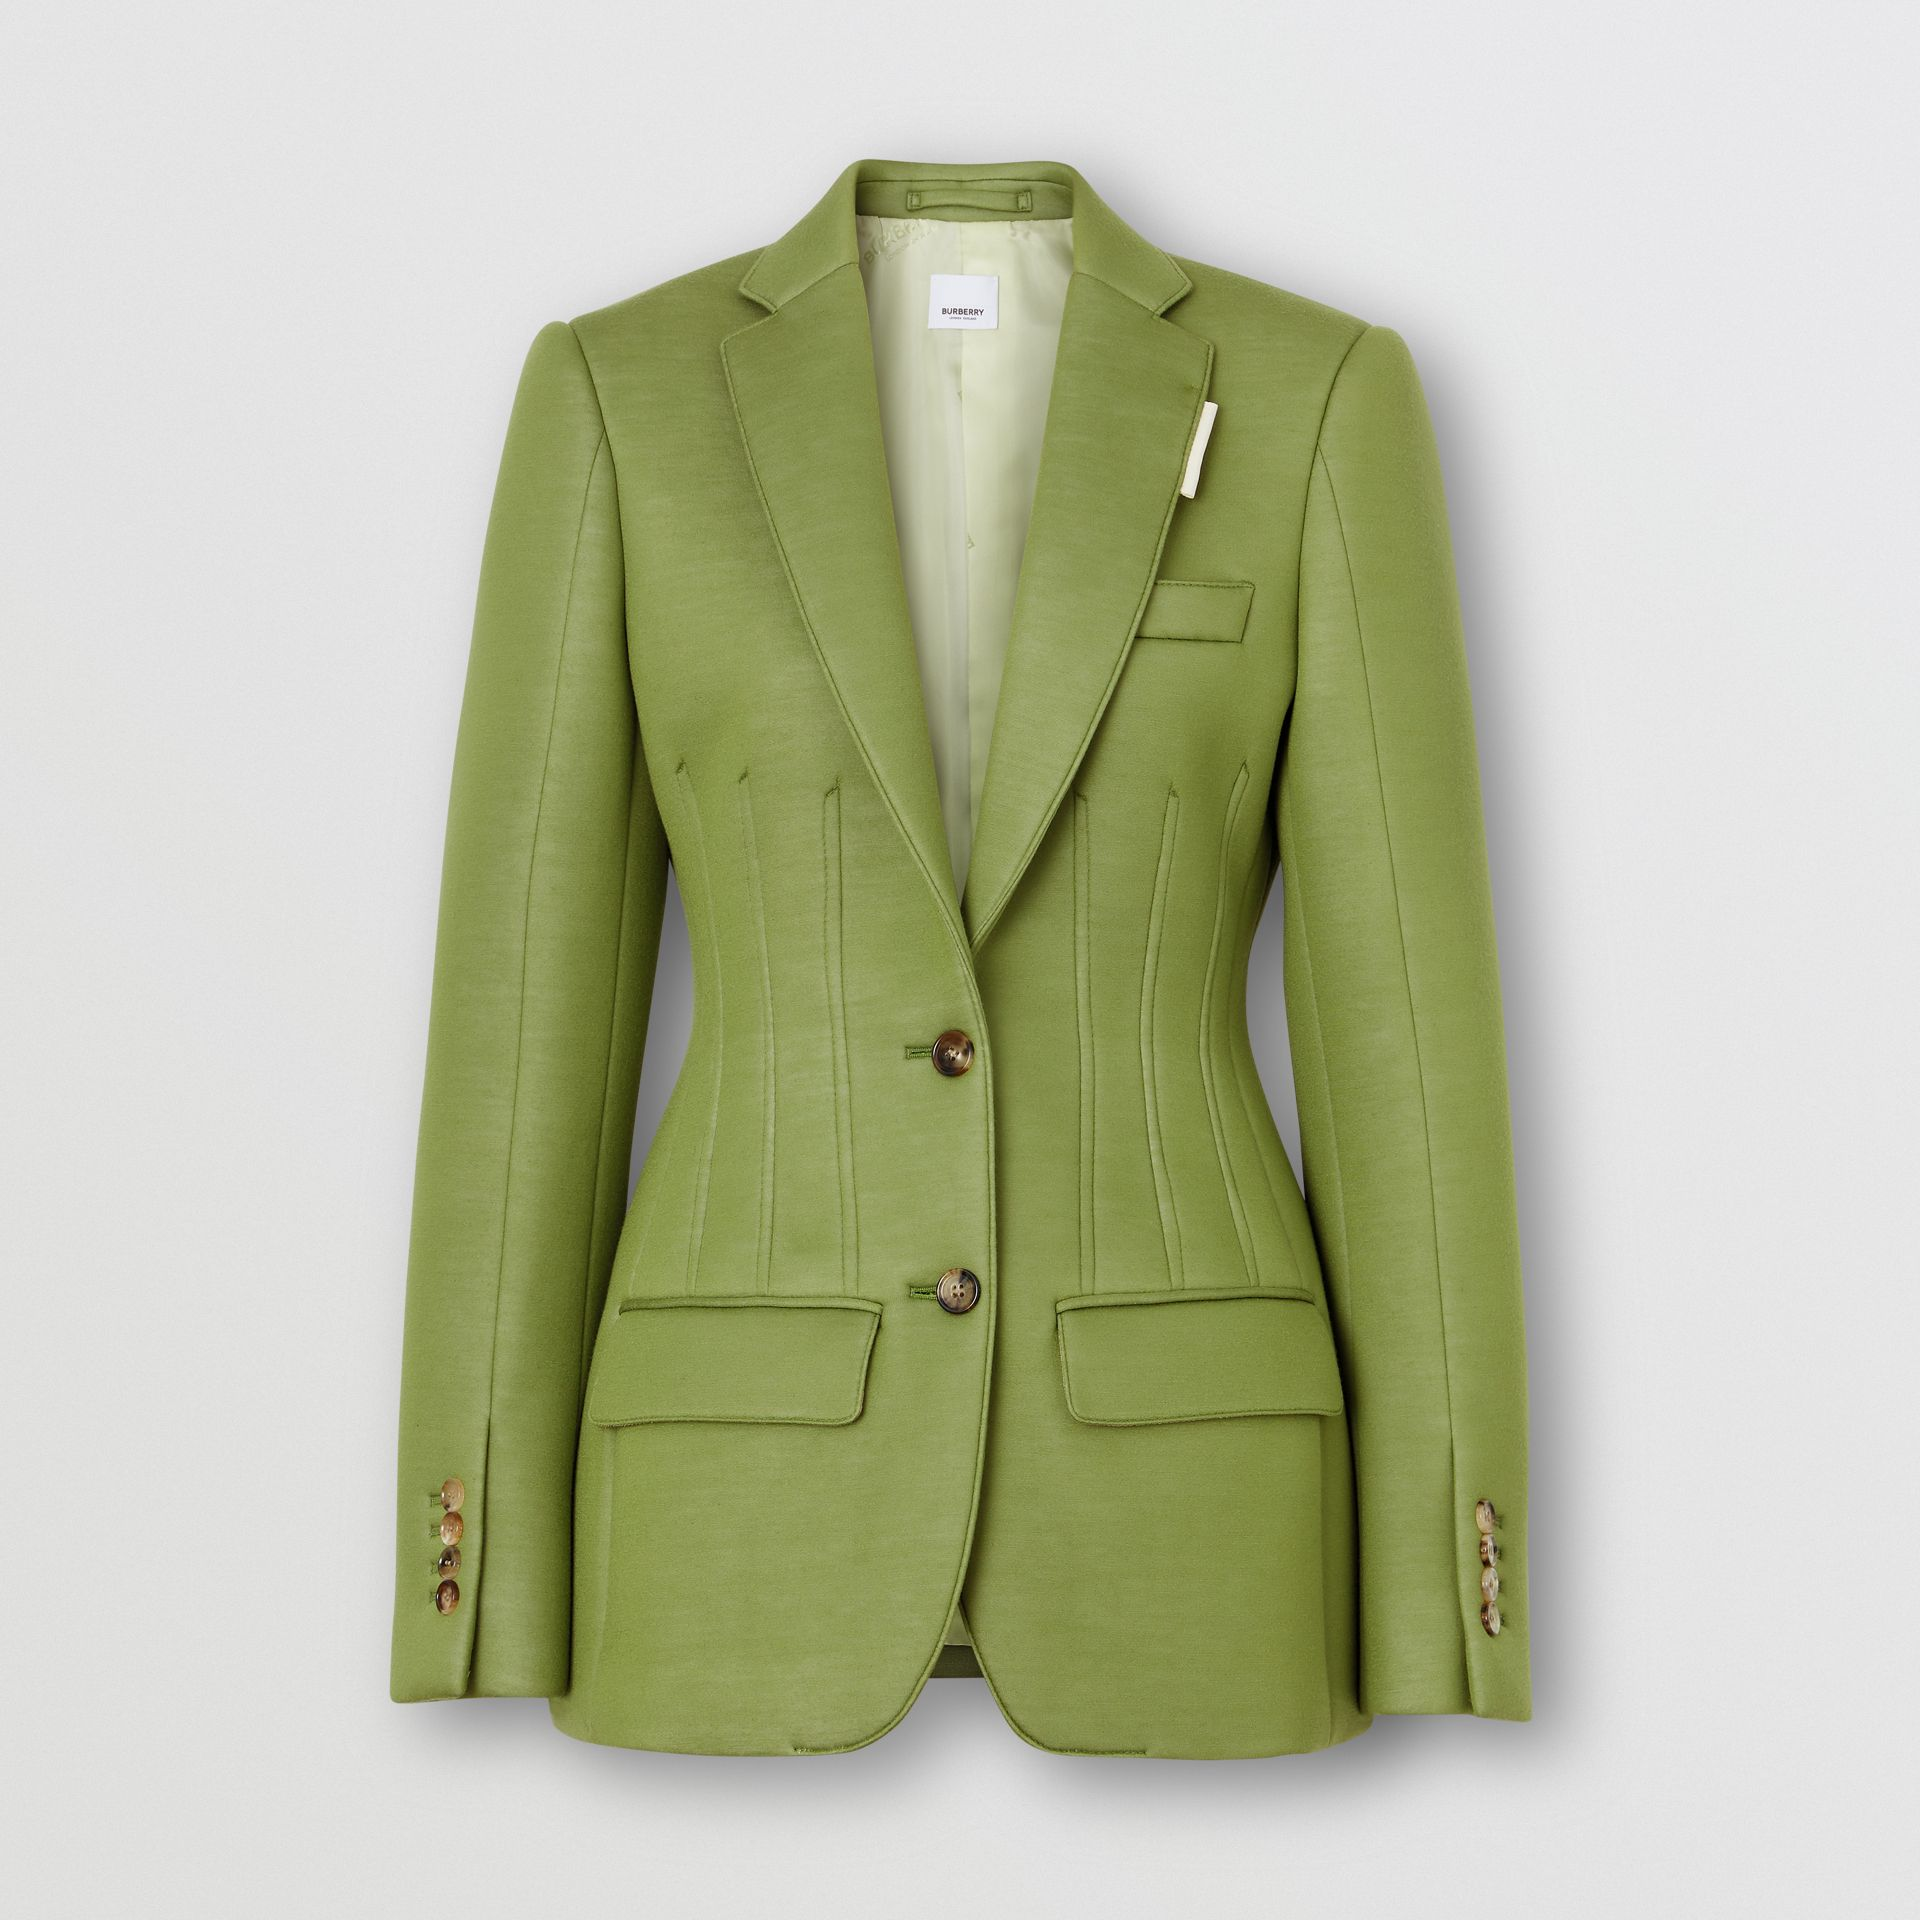 Double-faced Neoprene Tailored Jacket in Cedar Green - Women | Burberry - gallery image 3